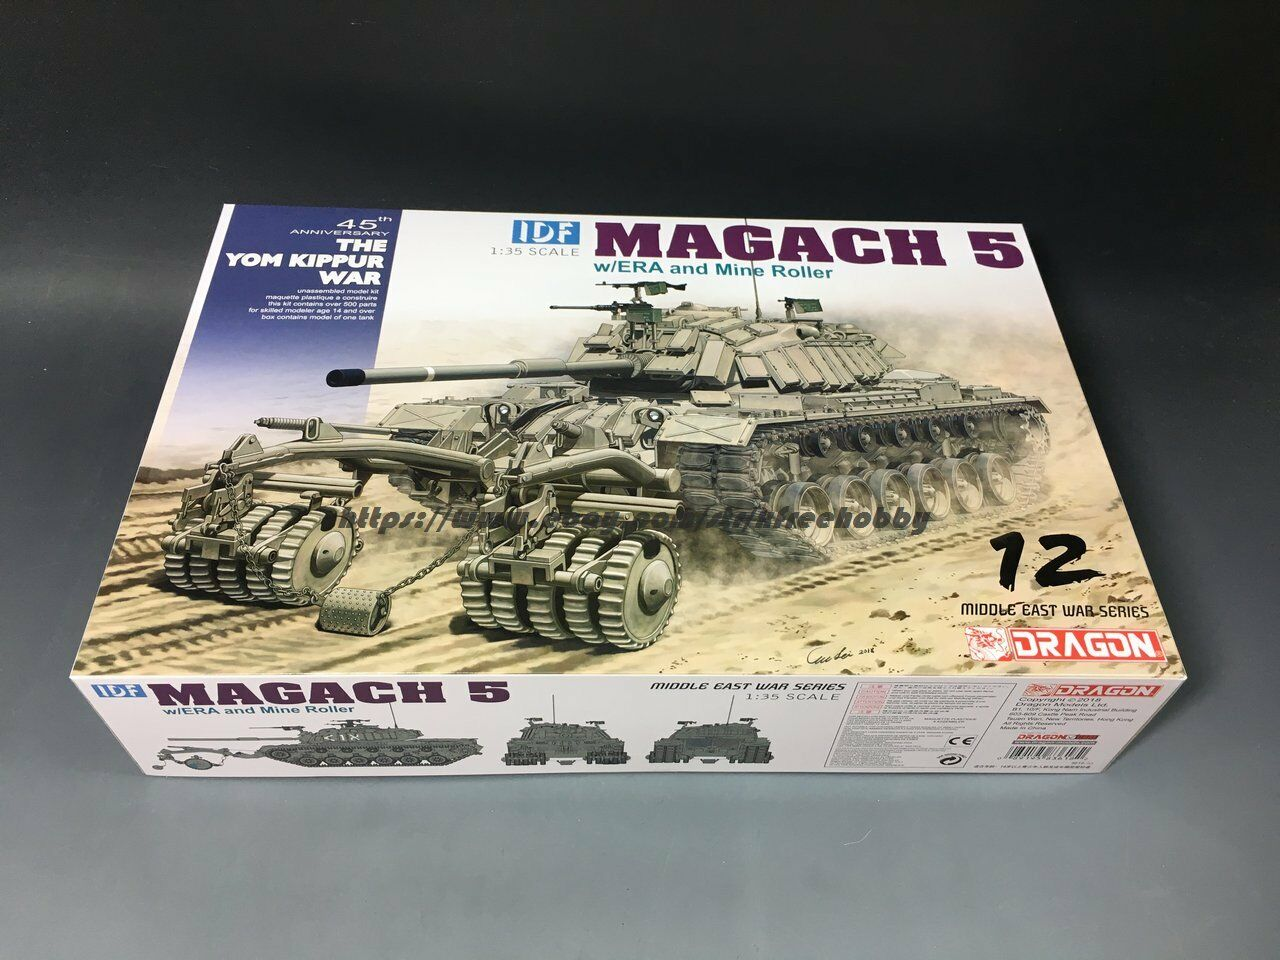 DRAGON 3618 1 35 IDF Magach 5 w ERA and Mine Roller